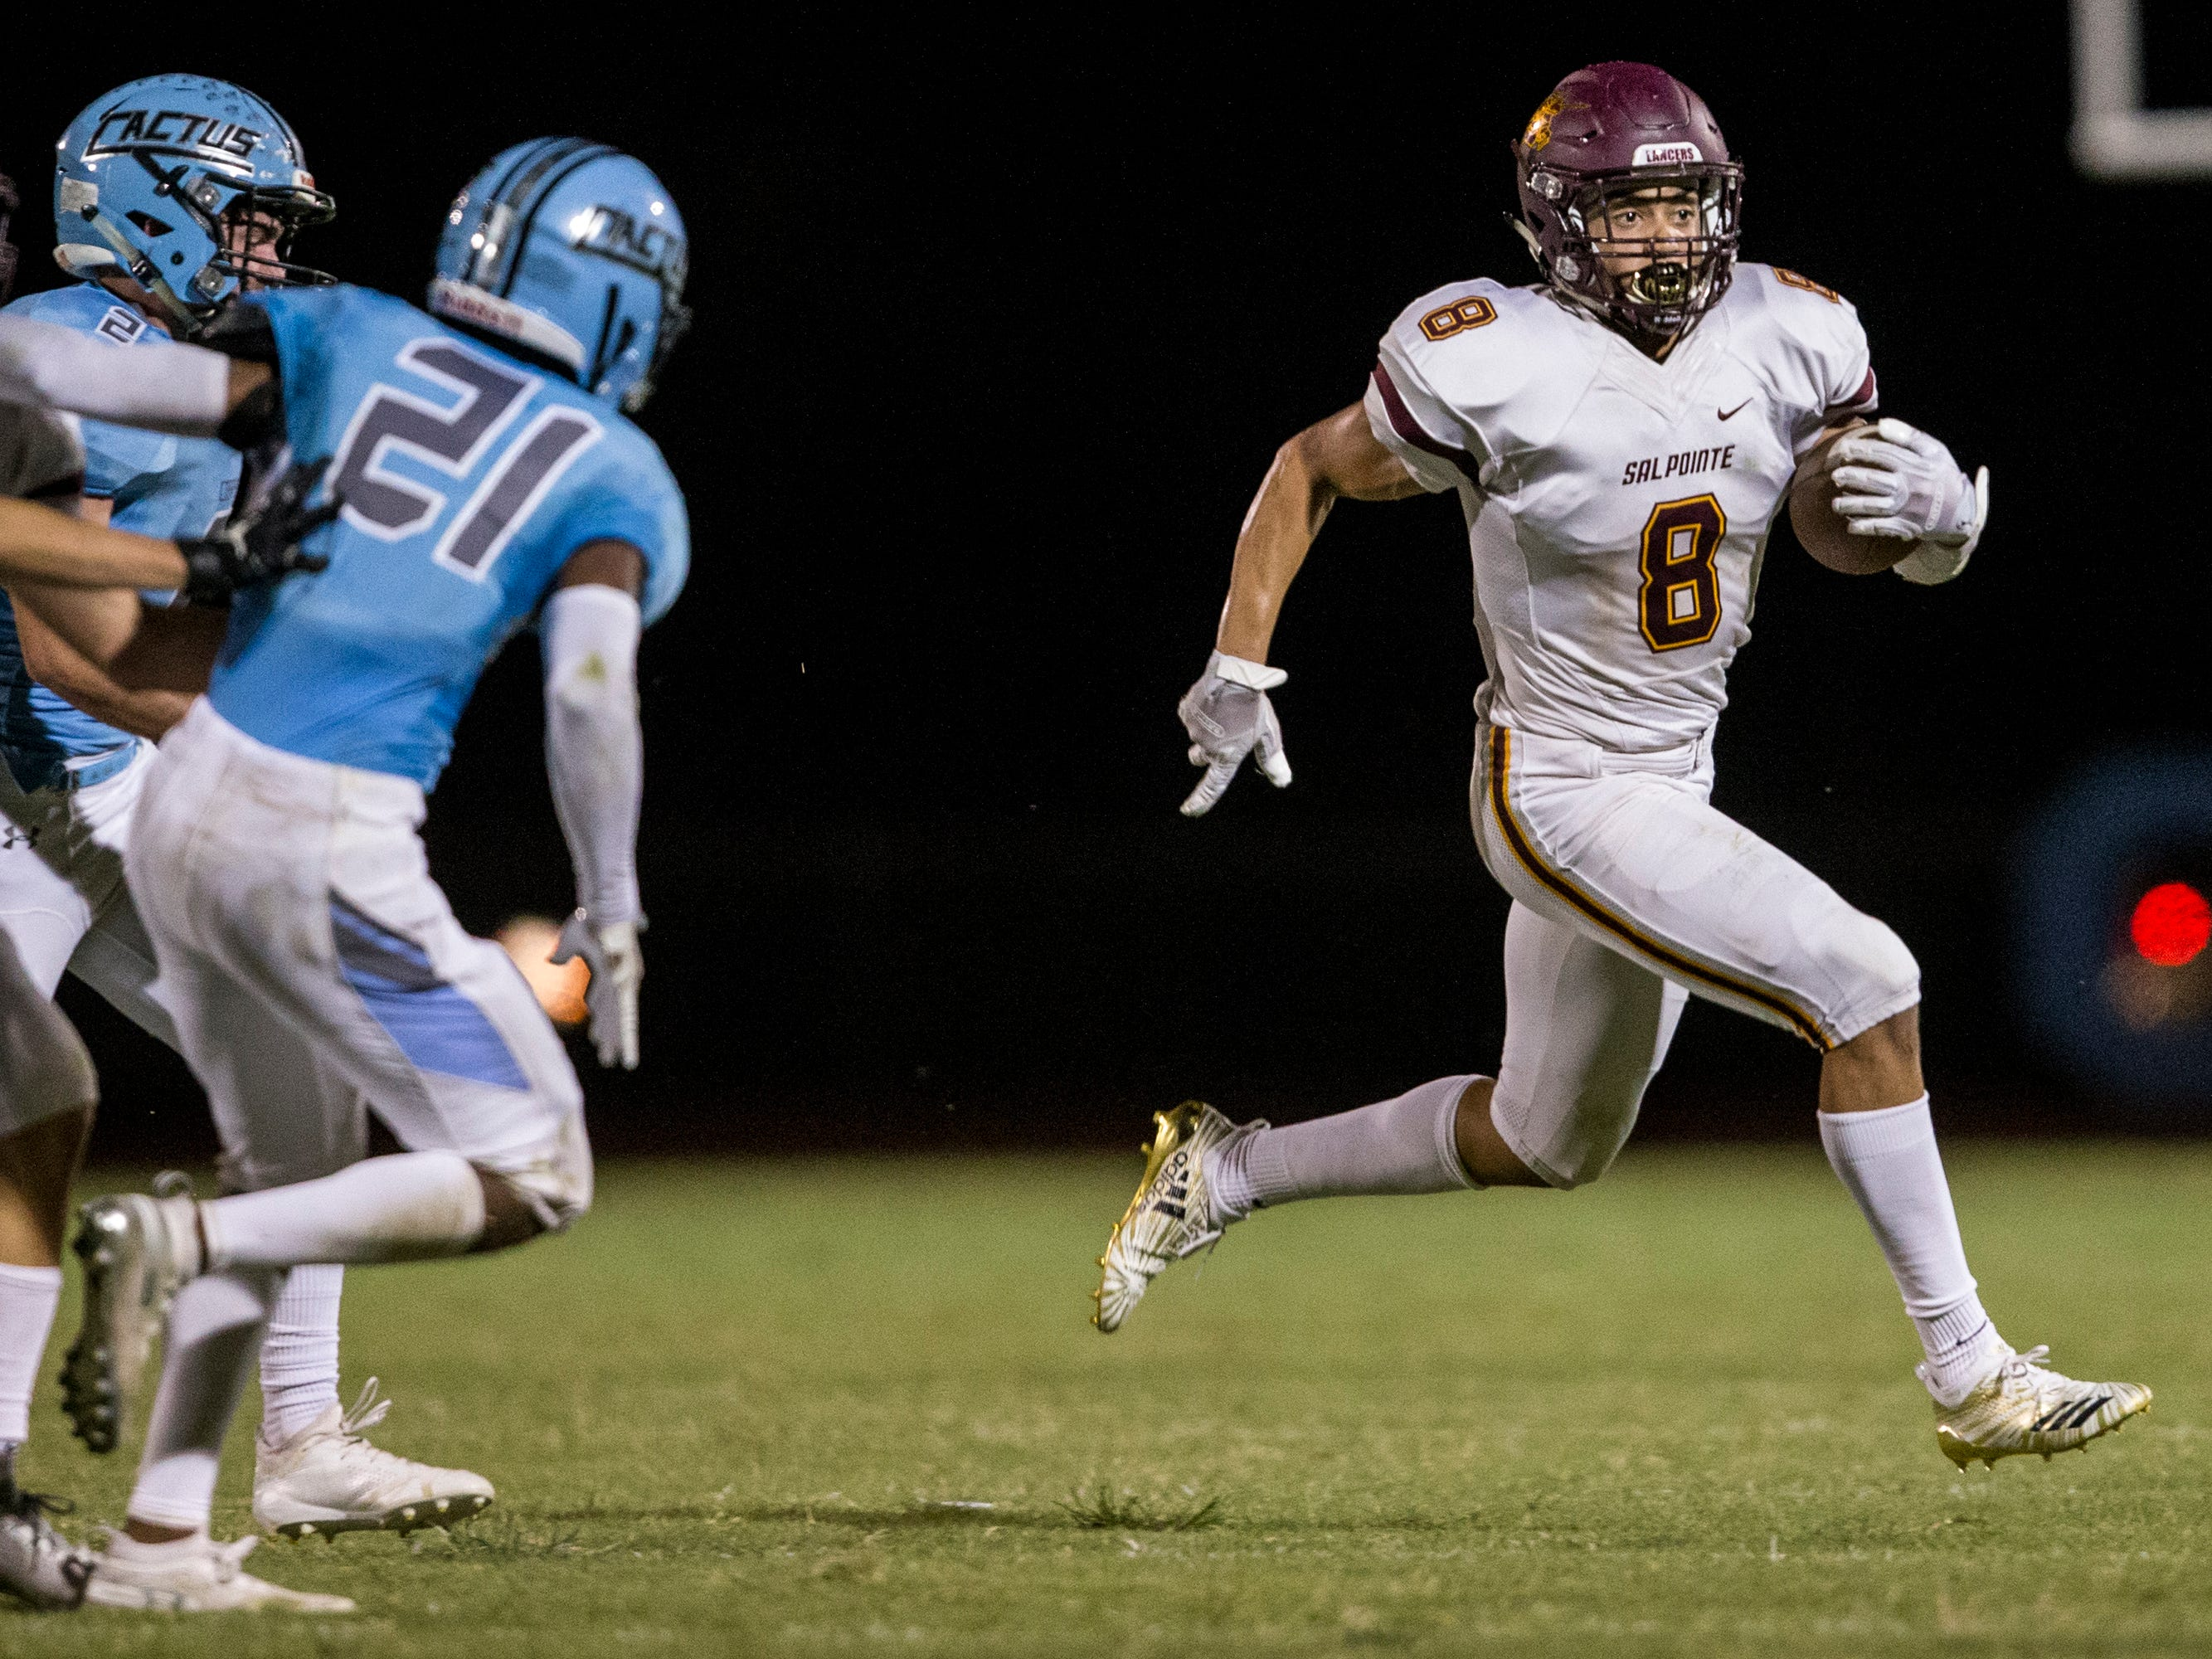 Salpointe's Lathan Ransom rushes against Cactus in the 1st quarter on Friday, Sept. 14, 2018, at Cactus High School in Glendale, Ariz.#azhsfb